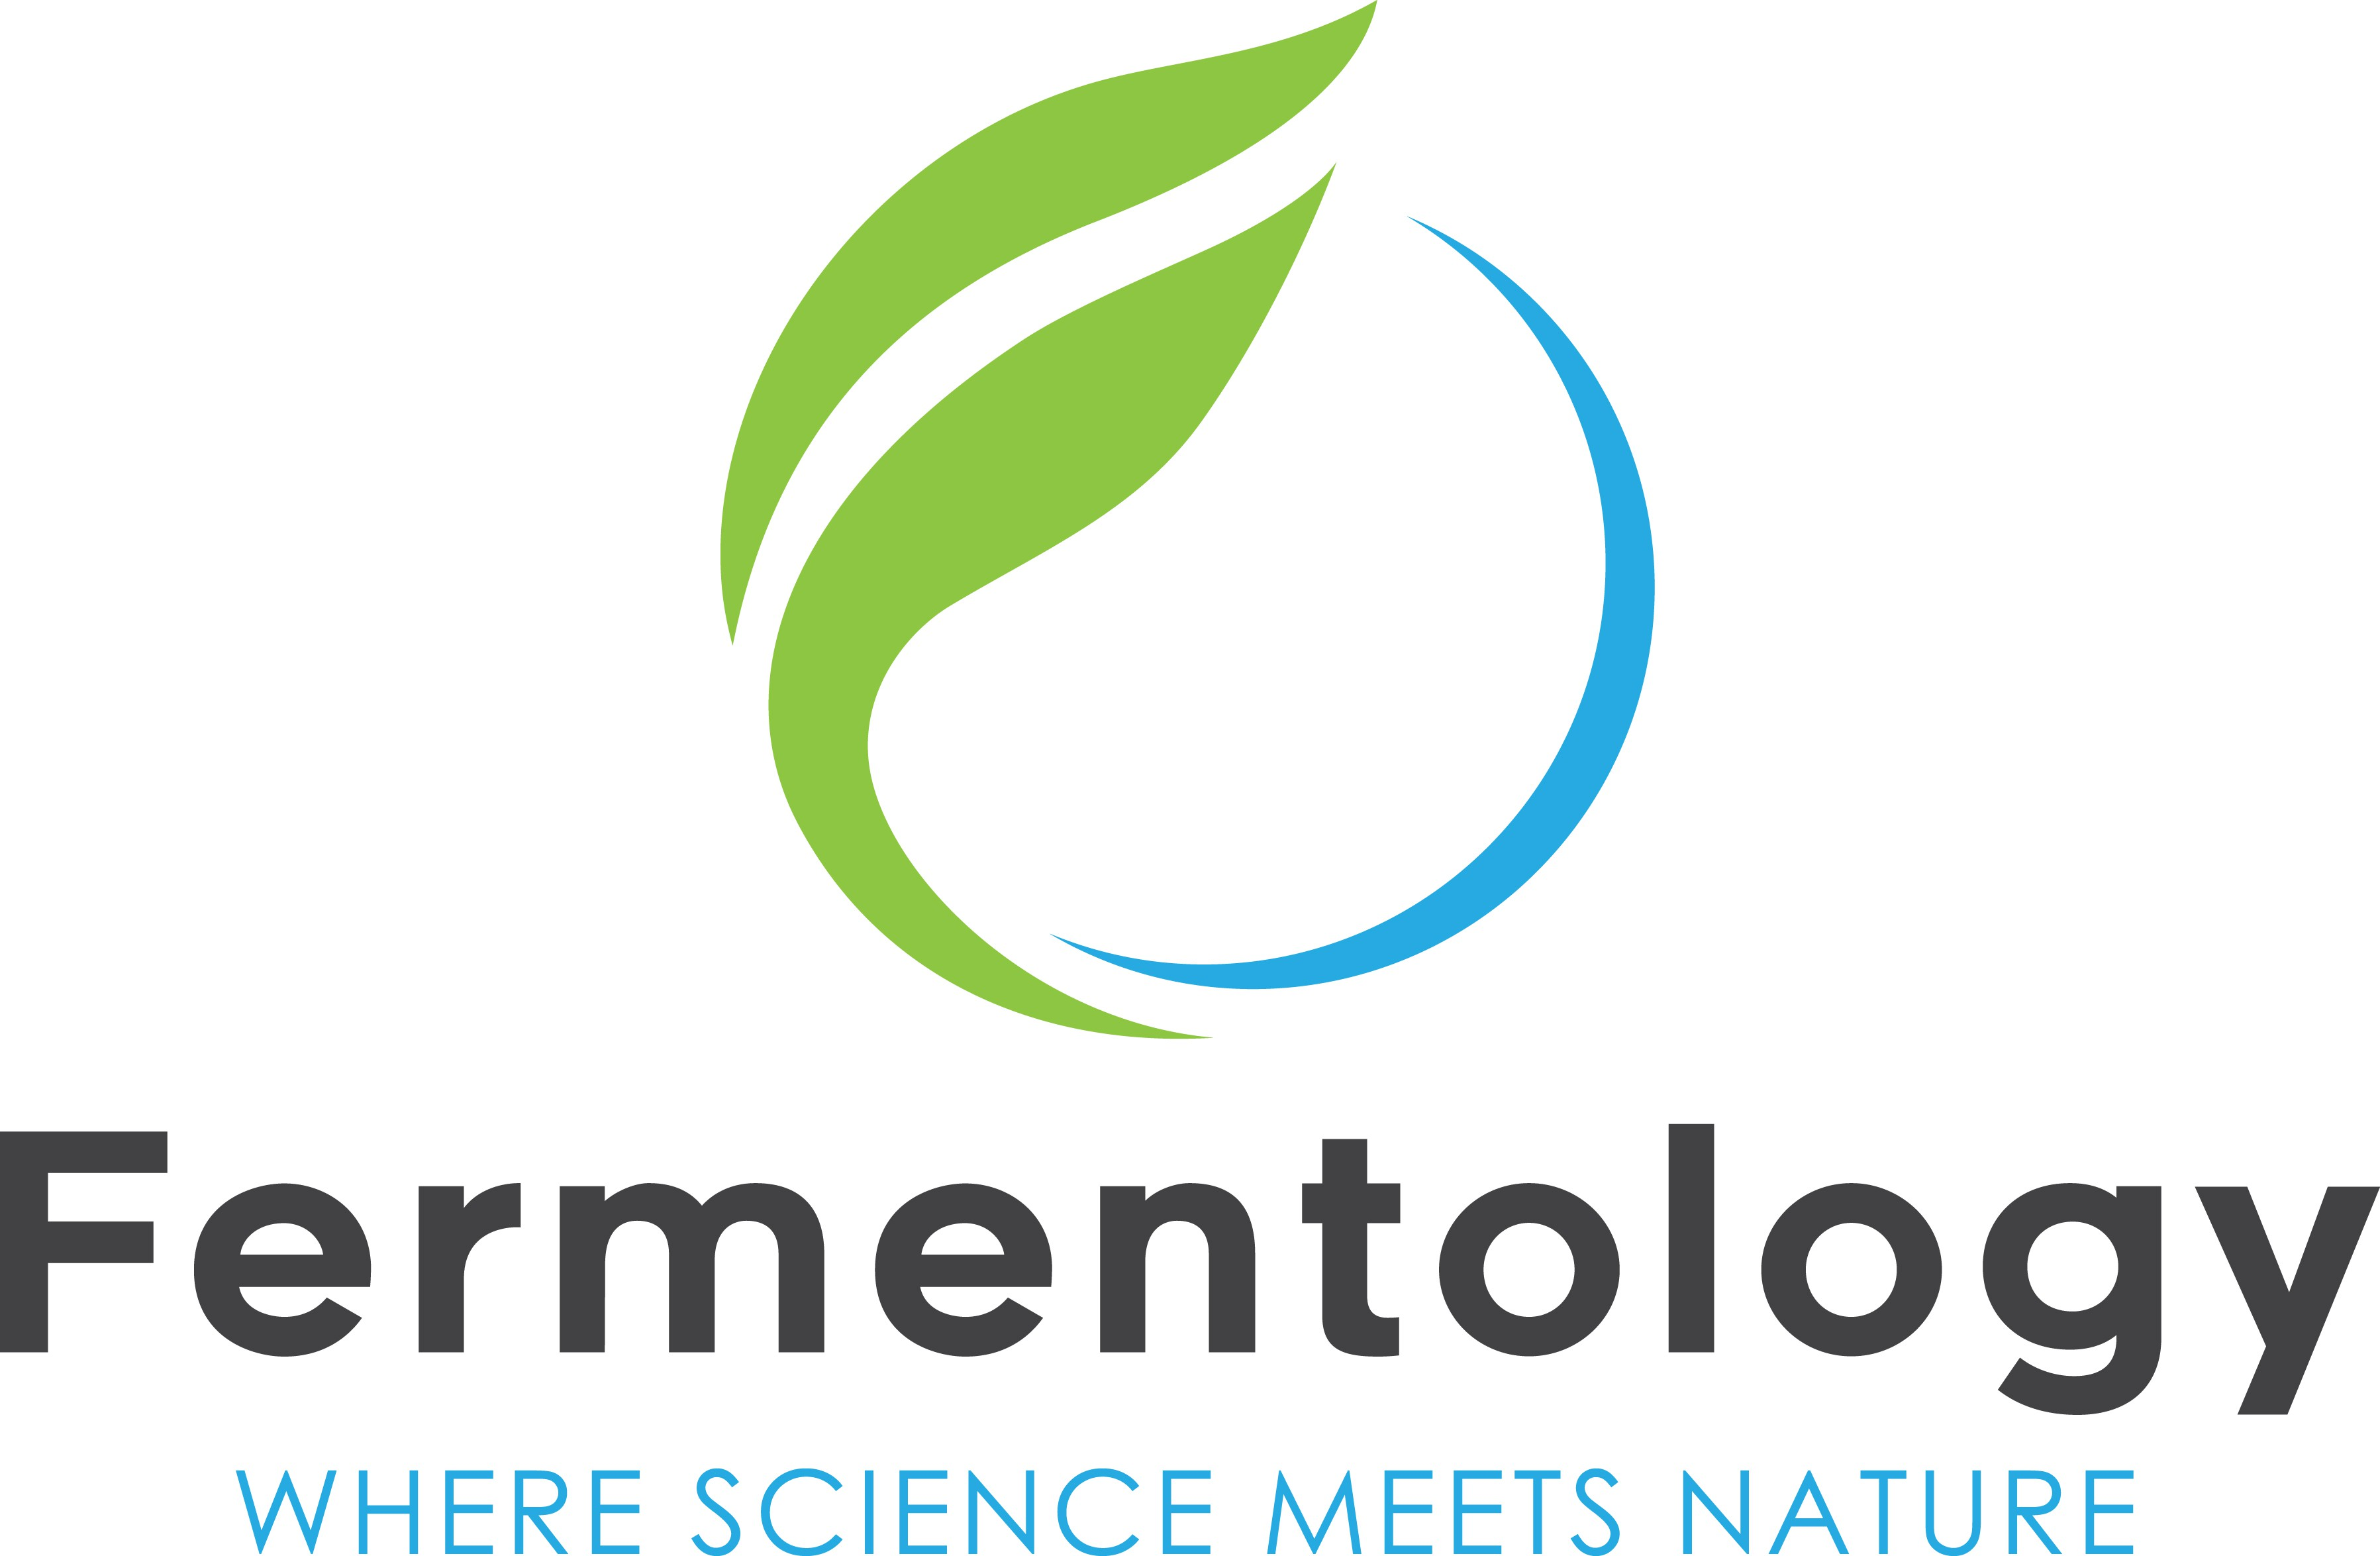 Design a Science Based Natural Ingredient Company's Logo - And Make the World a Better Place